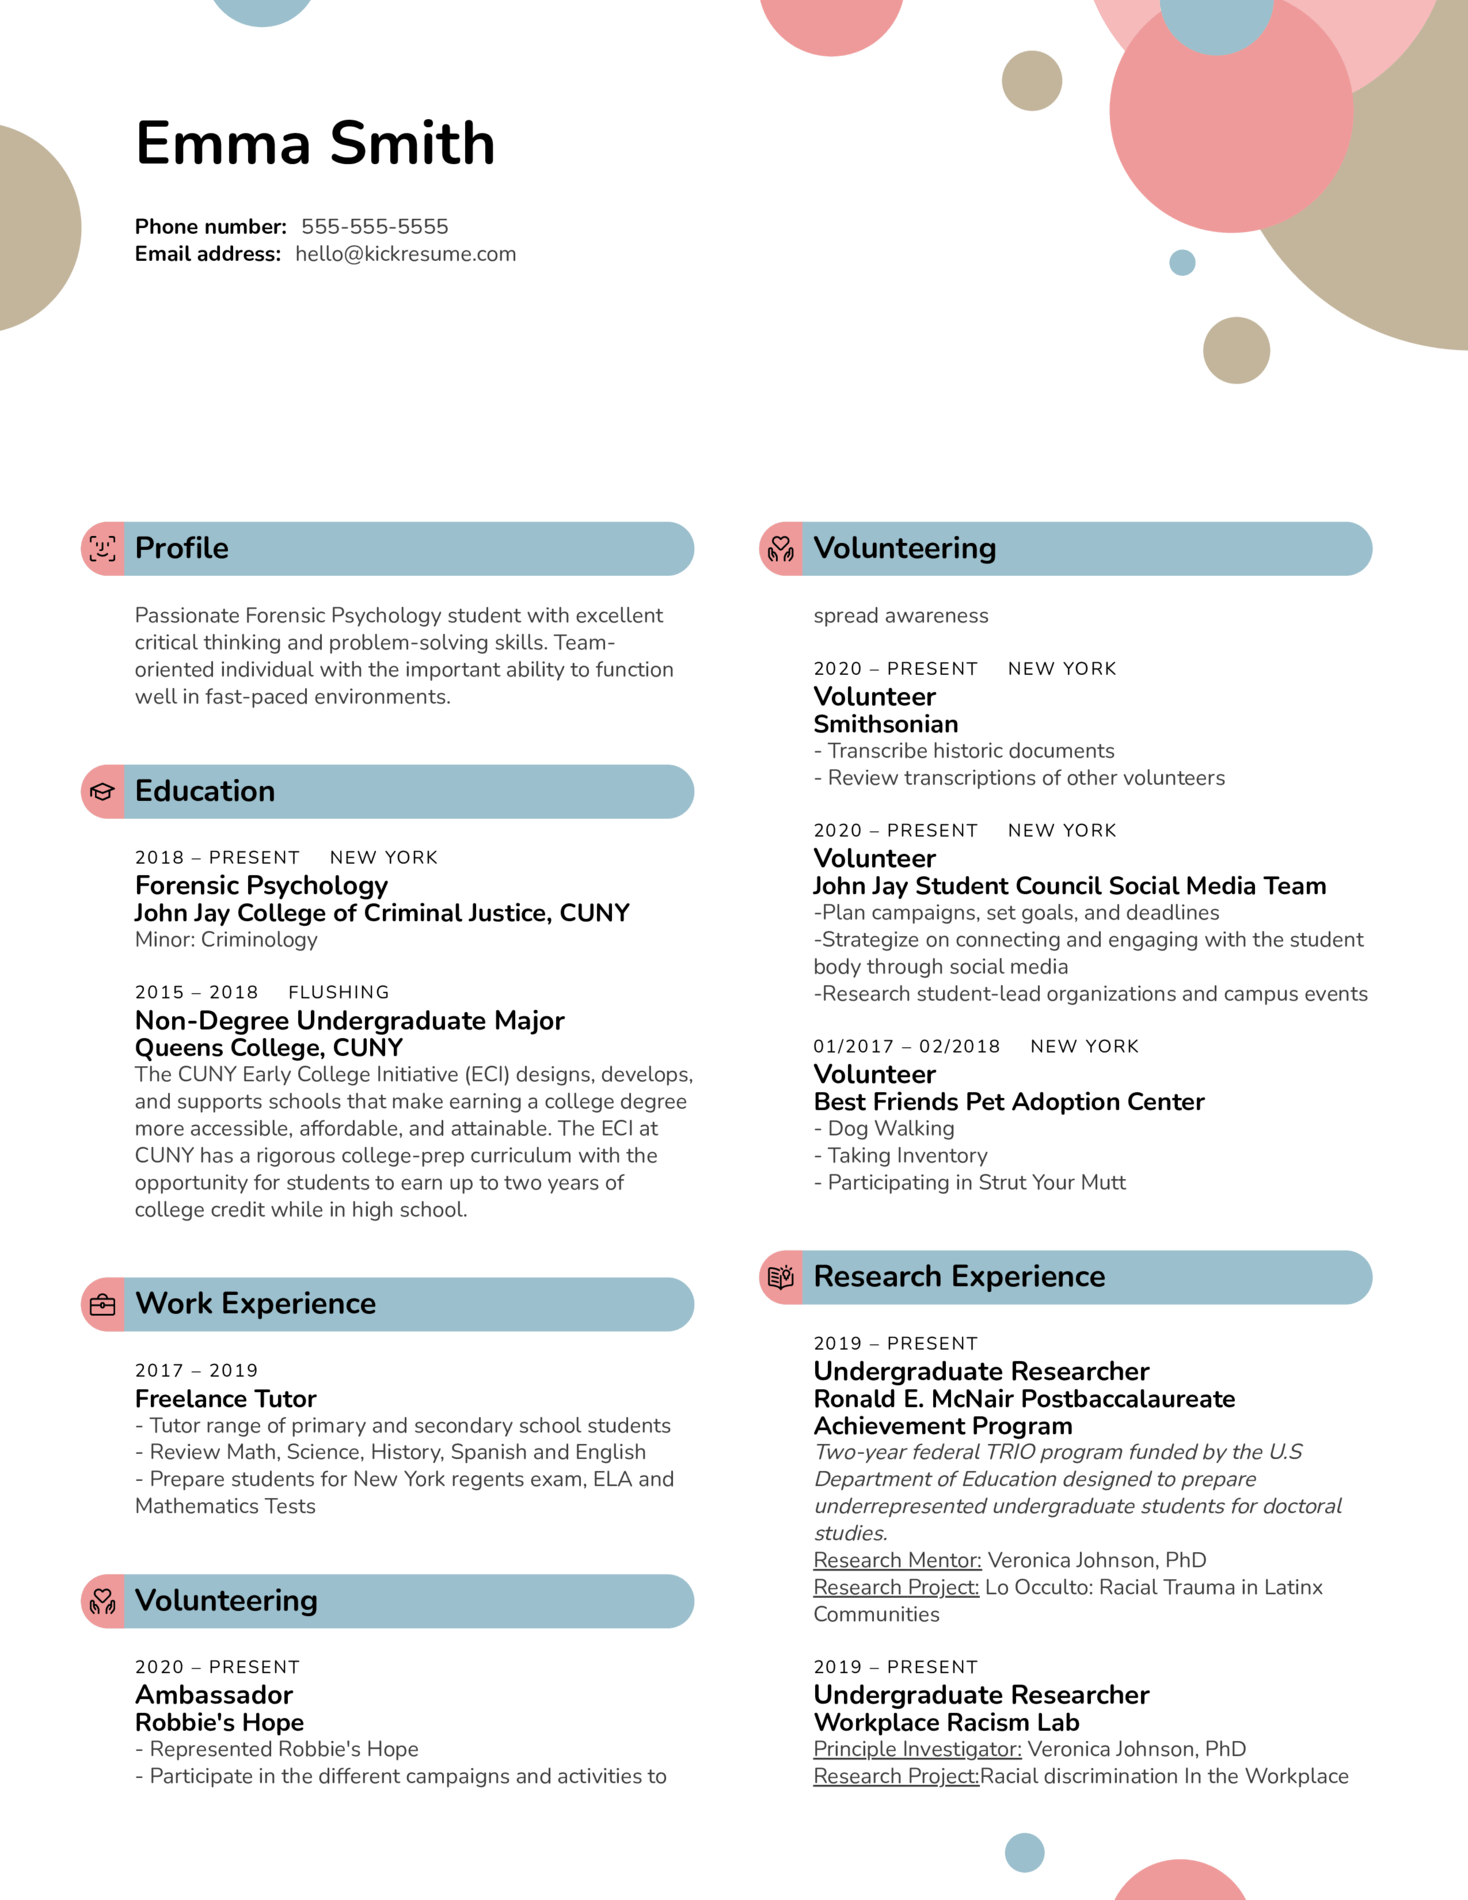 Research Extern at American Foundation for Suicide Prevention Resume Sample (časť 1)